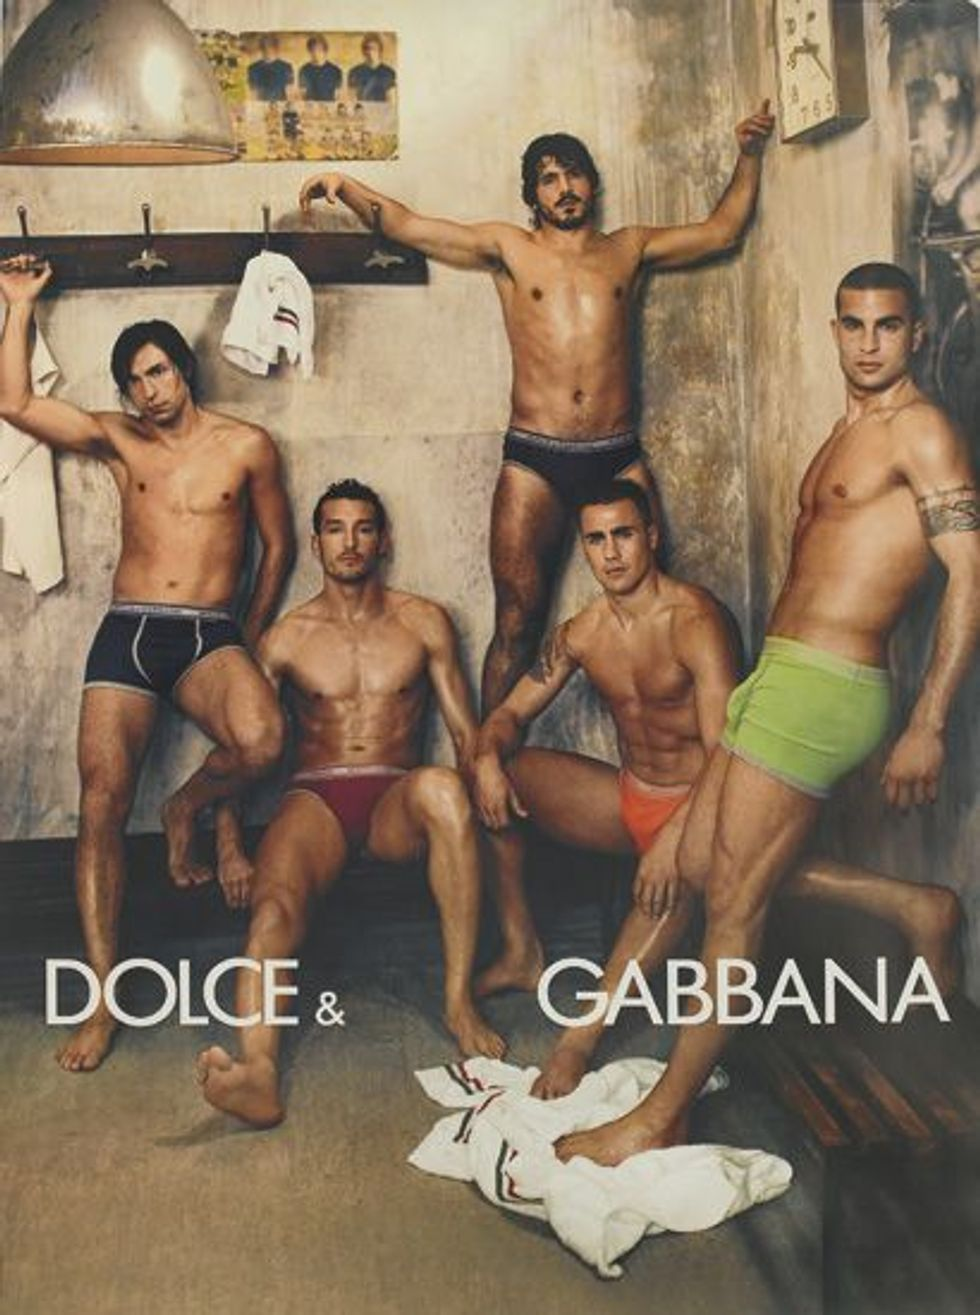 Why Is This Dolce & Gabbana Poster Worth $500?